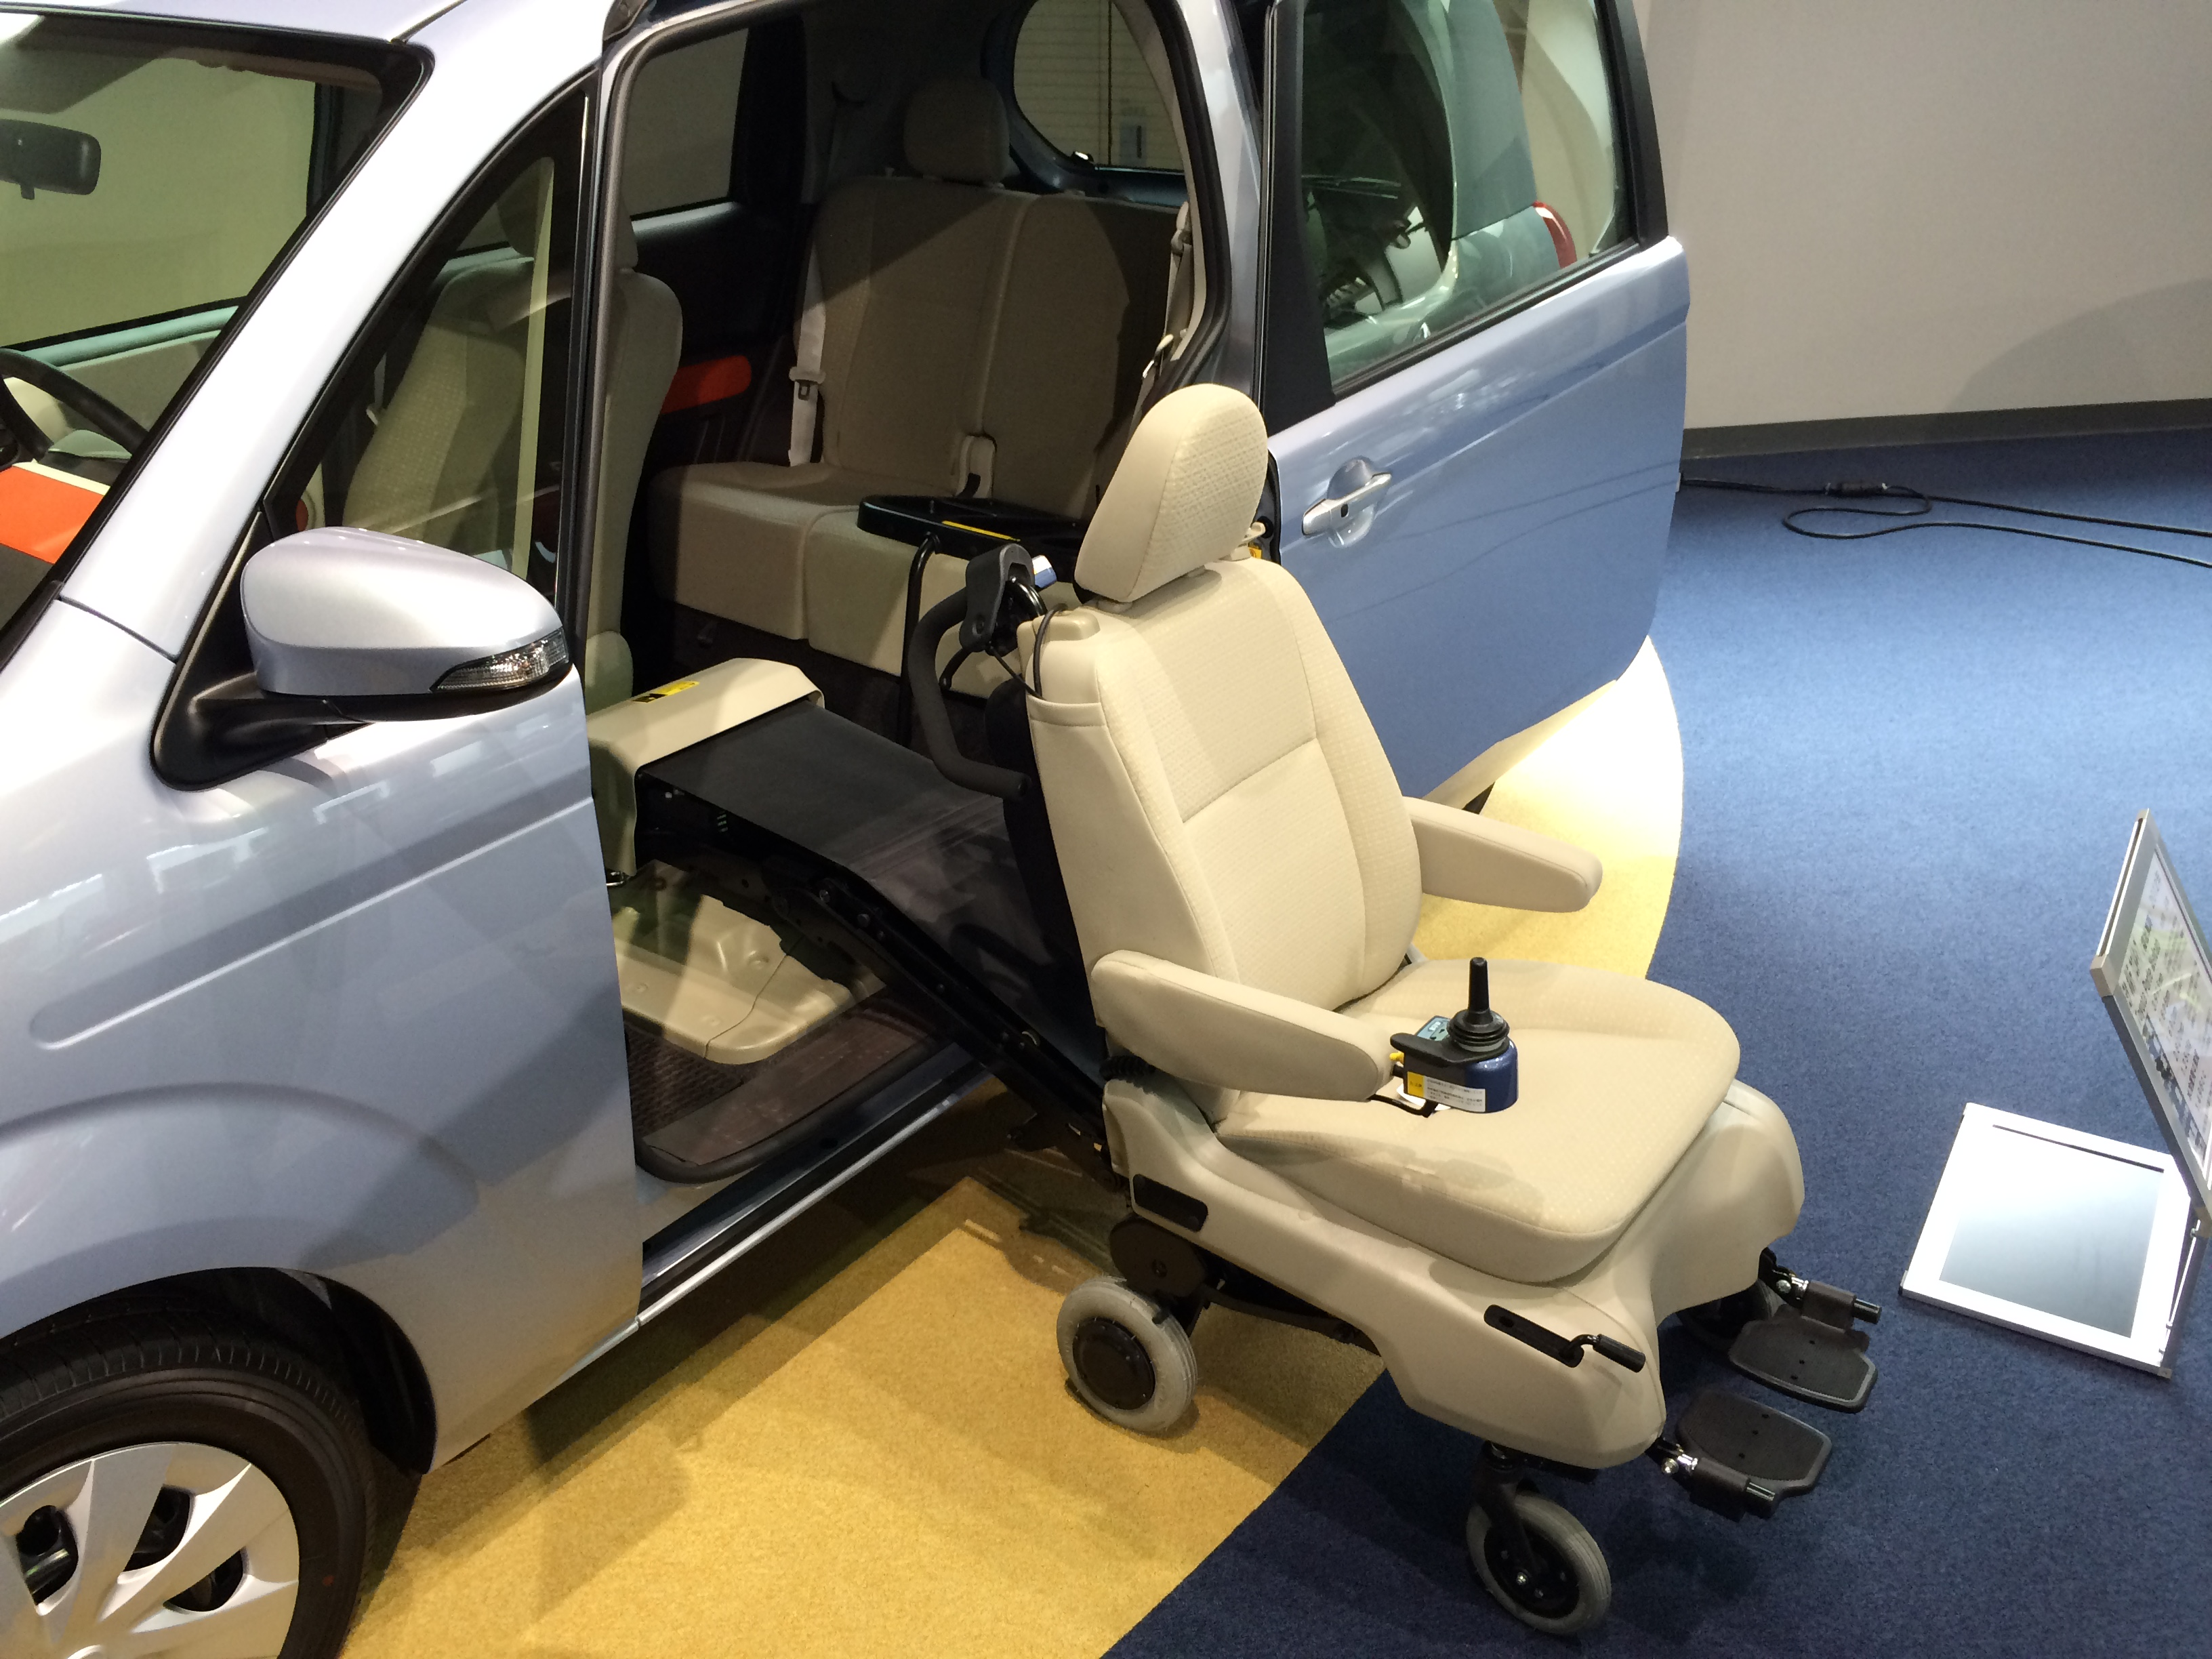 Wheelchair accessible van - Wikipedia